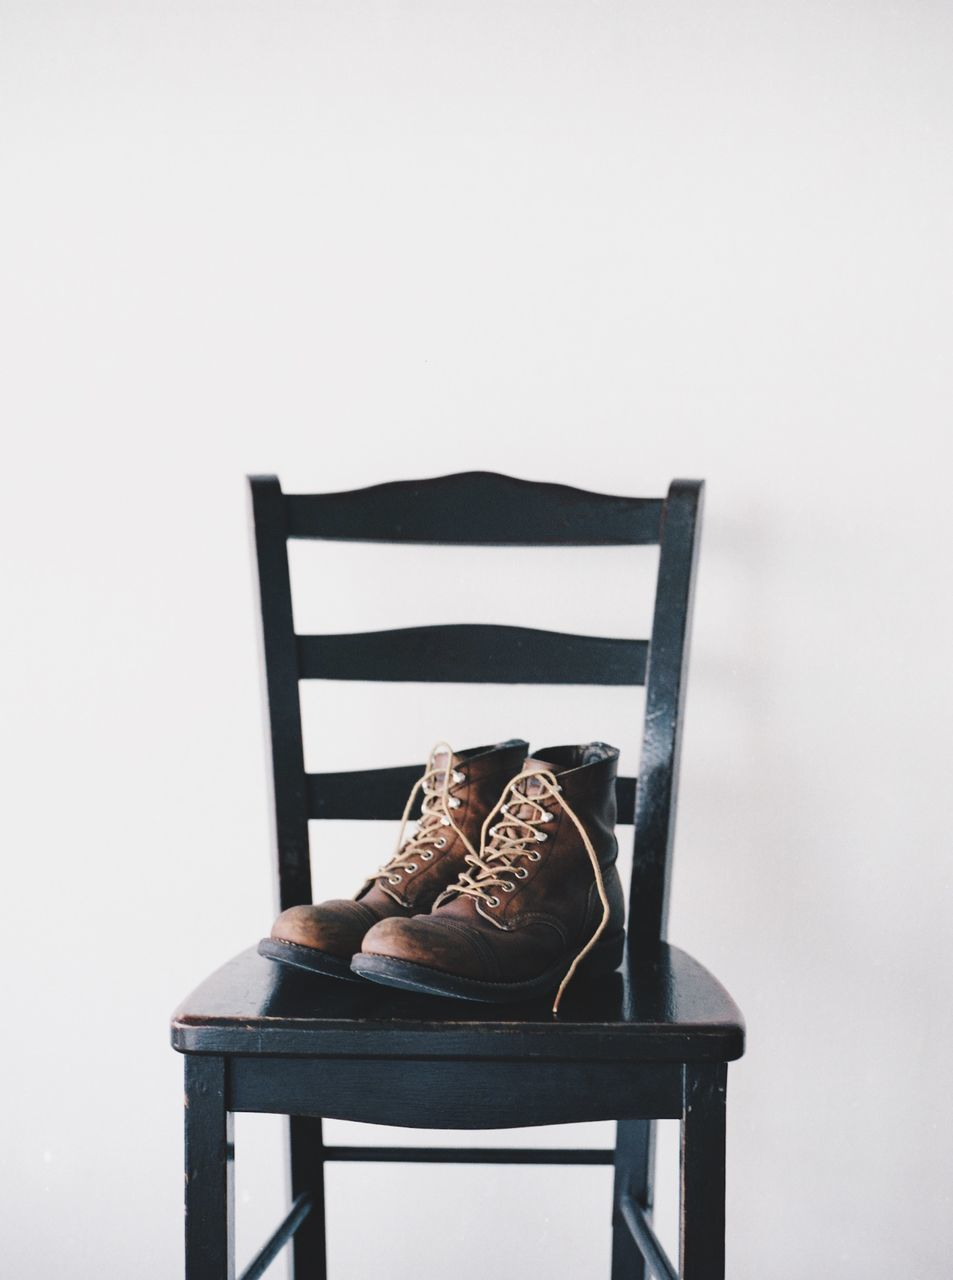 Shoes On Chair Against White Background